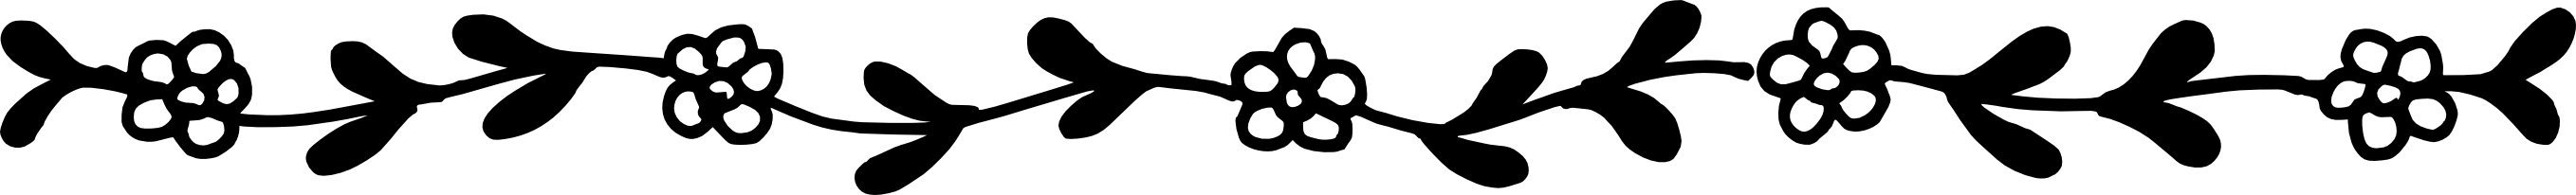 Flower line png. Border transparent onlygfx